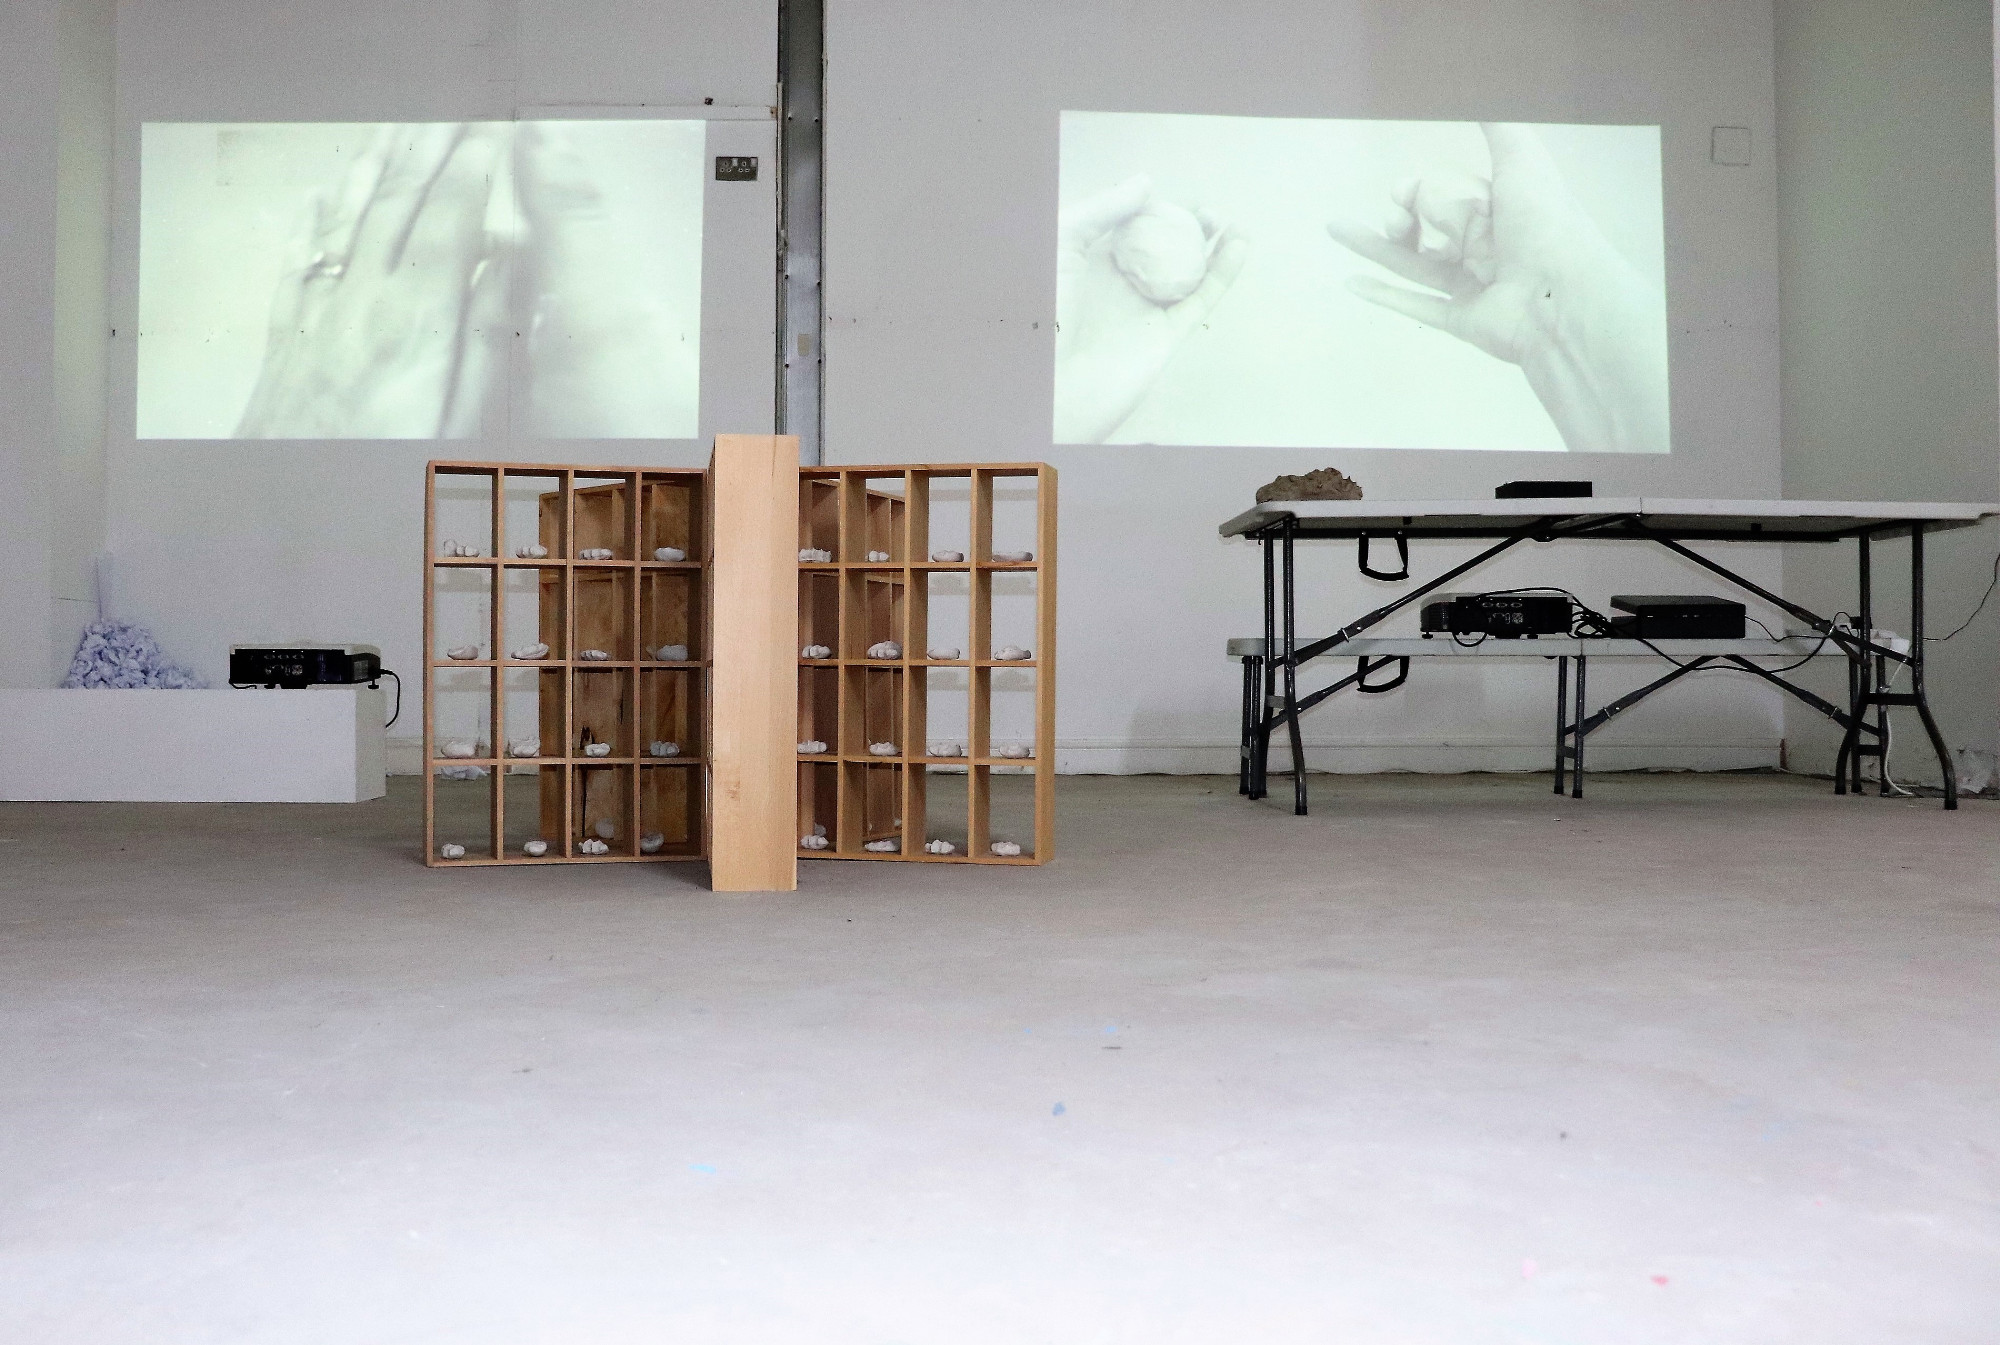 'Holding on' 2019, Installation - Ceramics, paper, clay, video projection, wooden shelving - Sarah Strachan